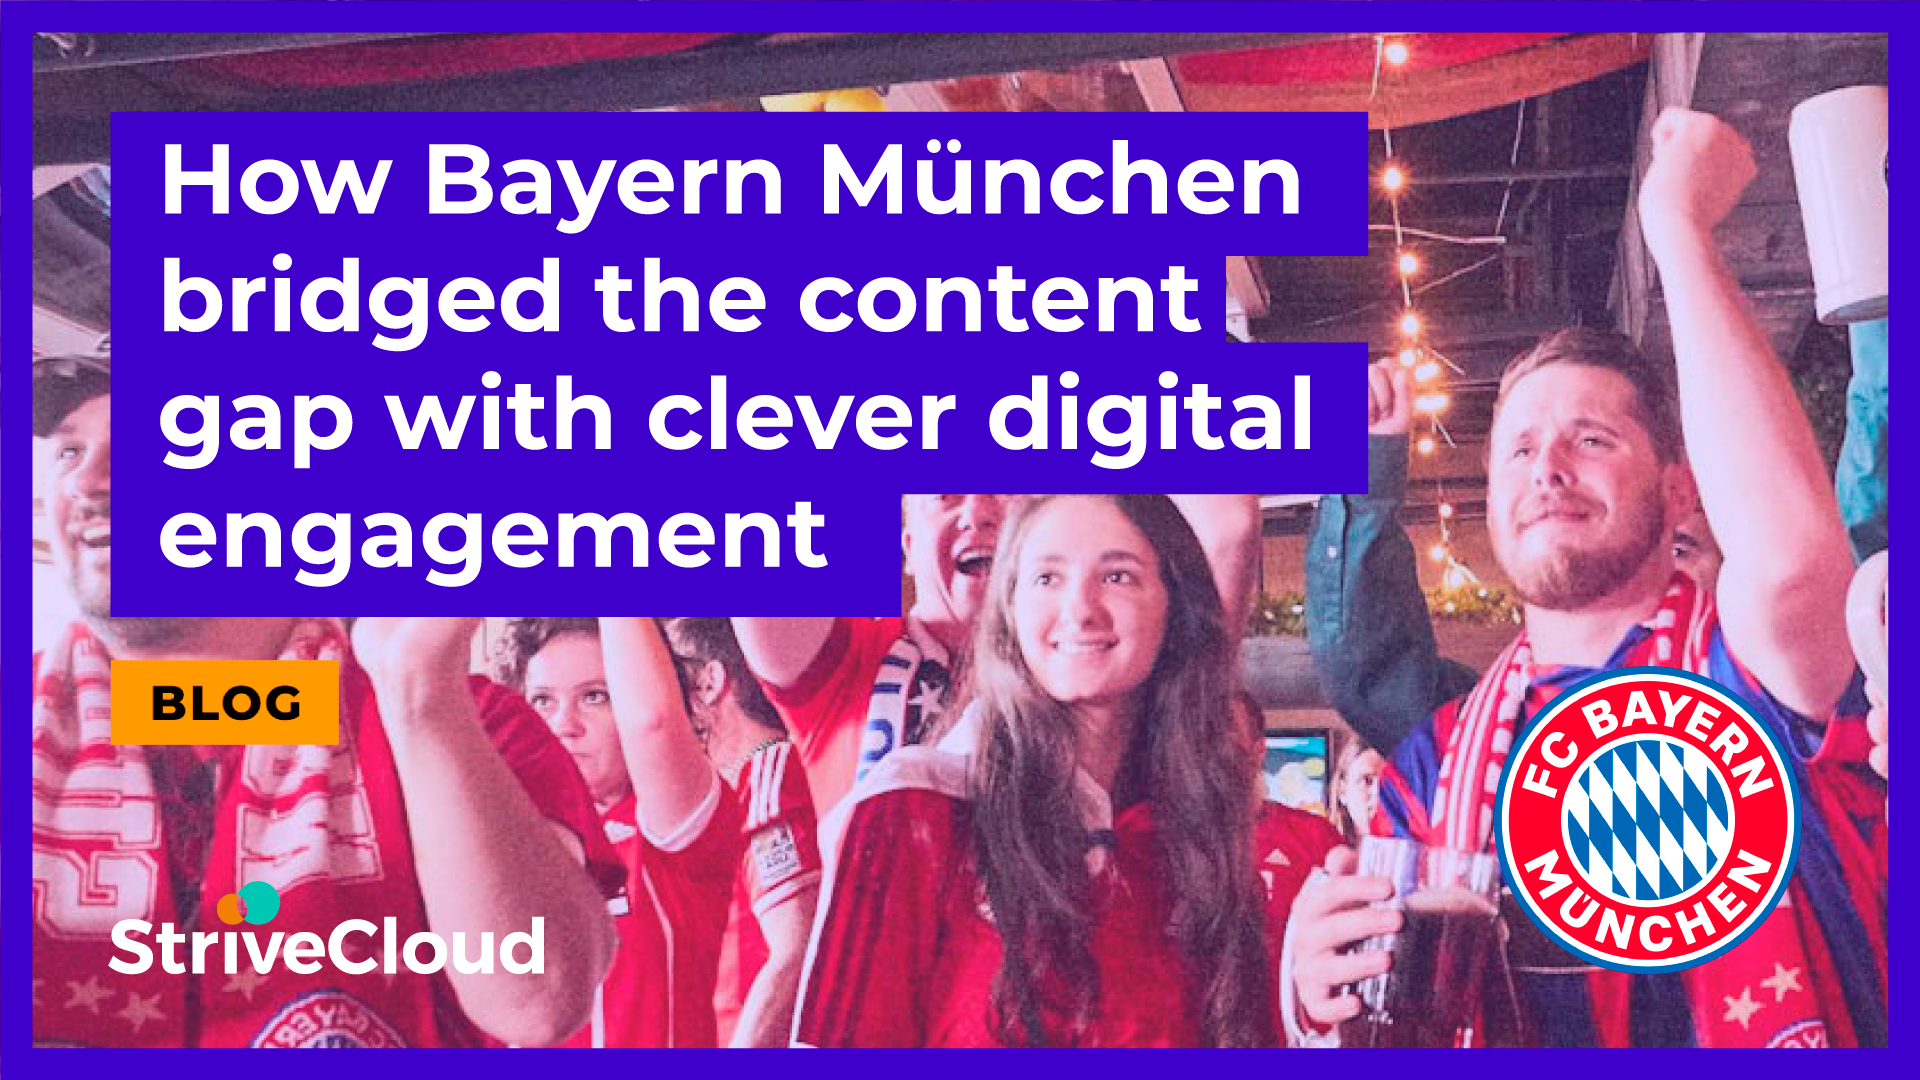 Engagement breakdown: How Bayern München bridged the content gap with clever digital fan engagement